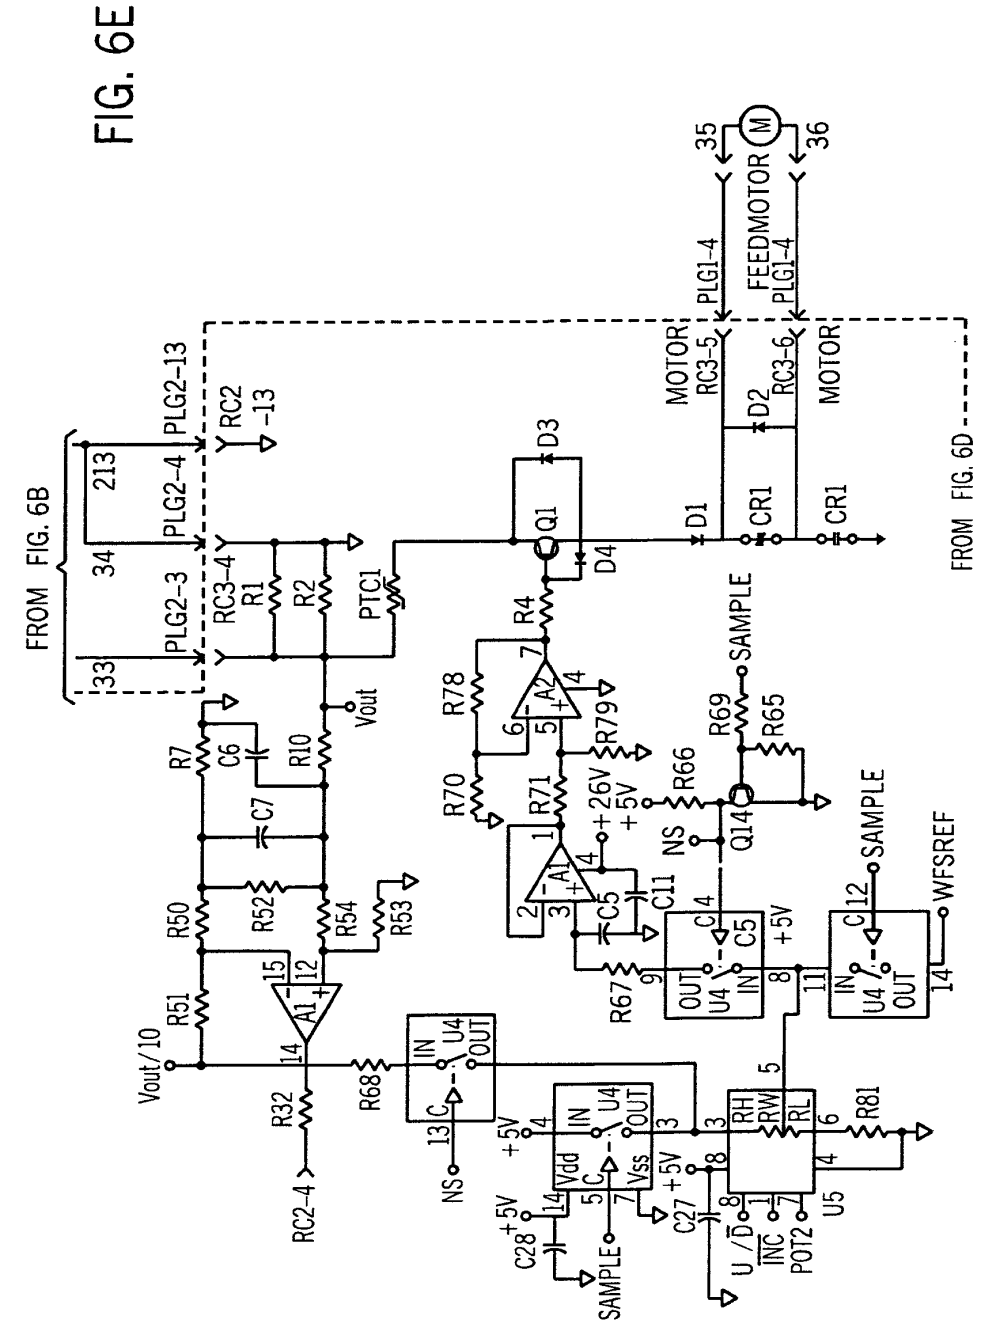 medium resolution of  us08546728 20131001 d00010 patent us8546728 welder with integrated wire feeder having hobart welder wiring diagram at